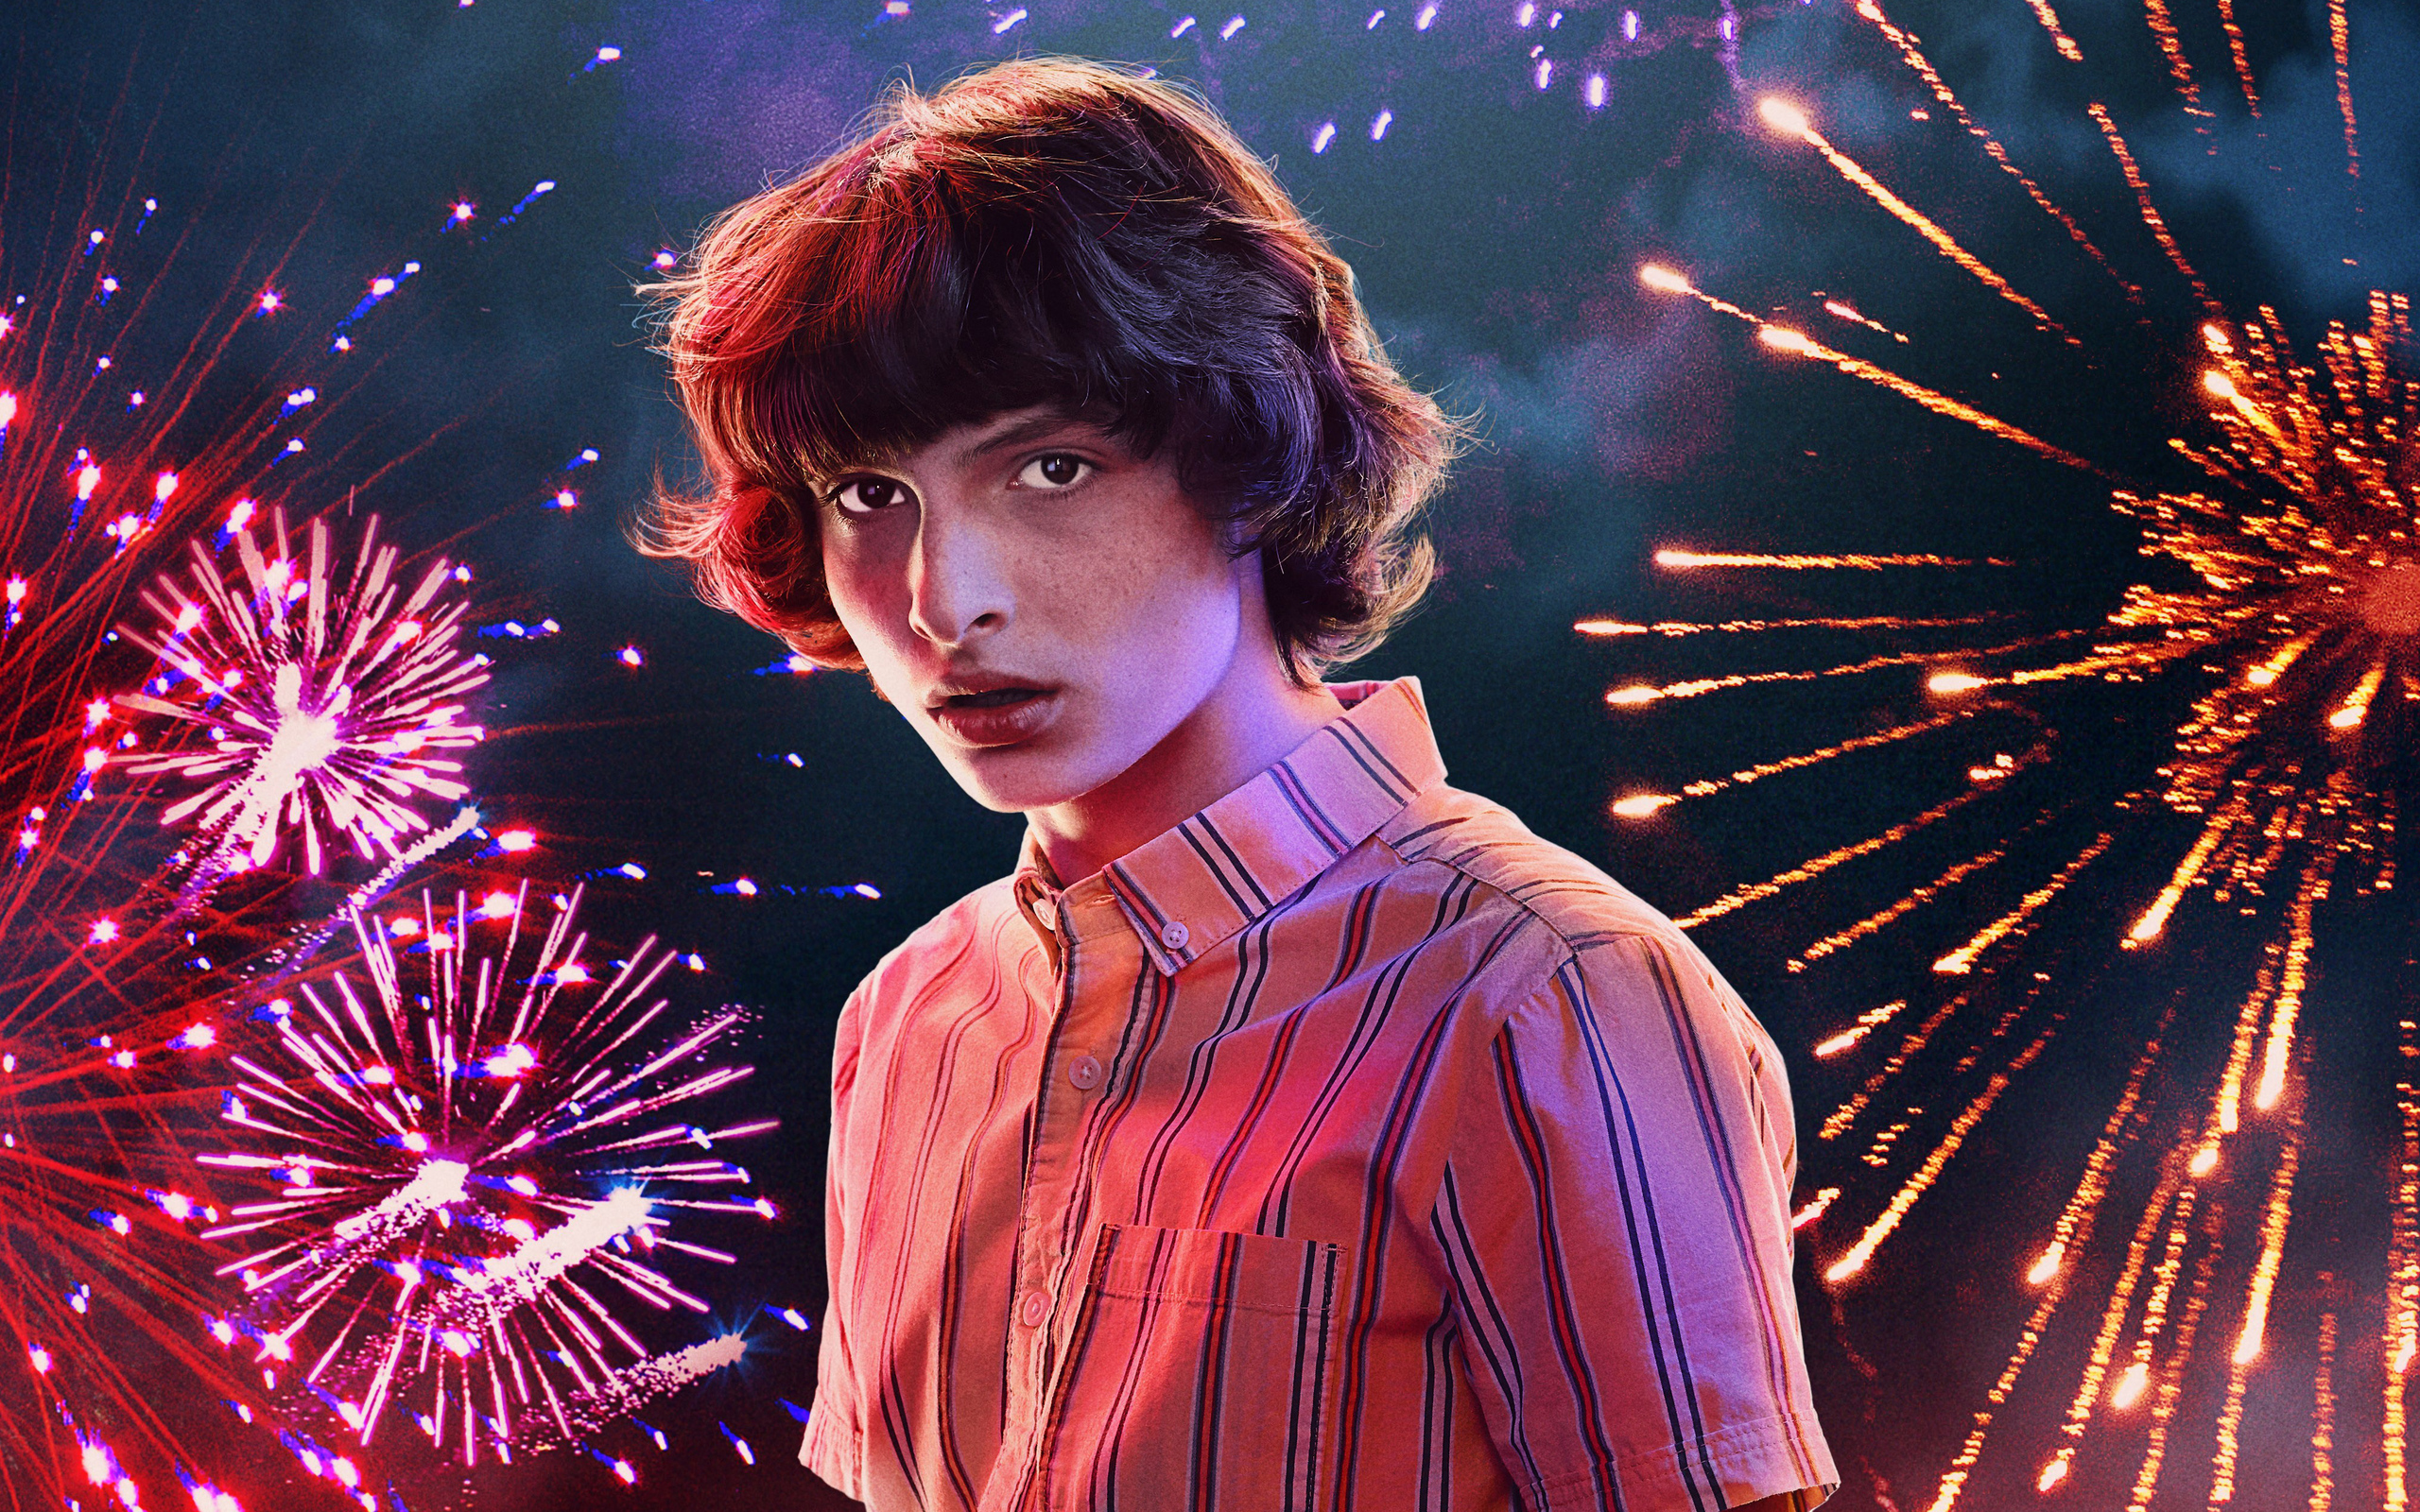 mike-in-stranger-things-season-3-2019-5k-9b.jpg